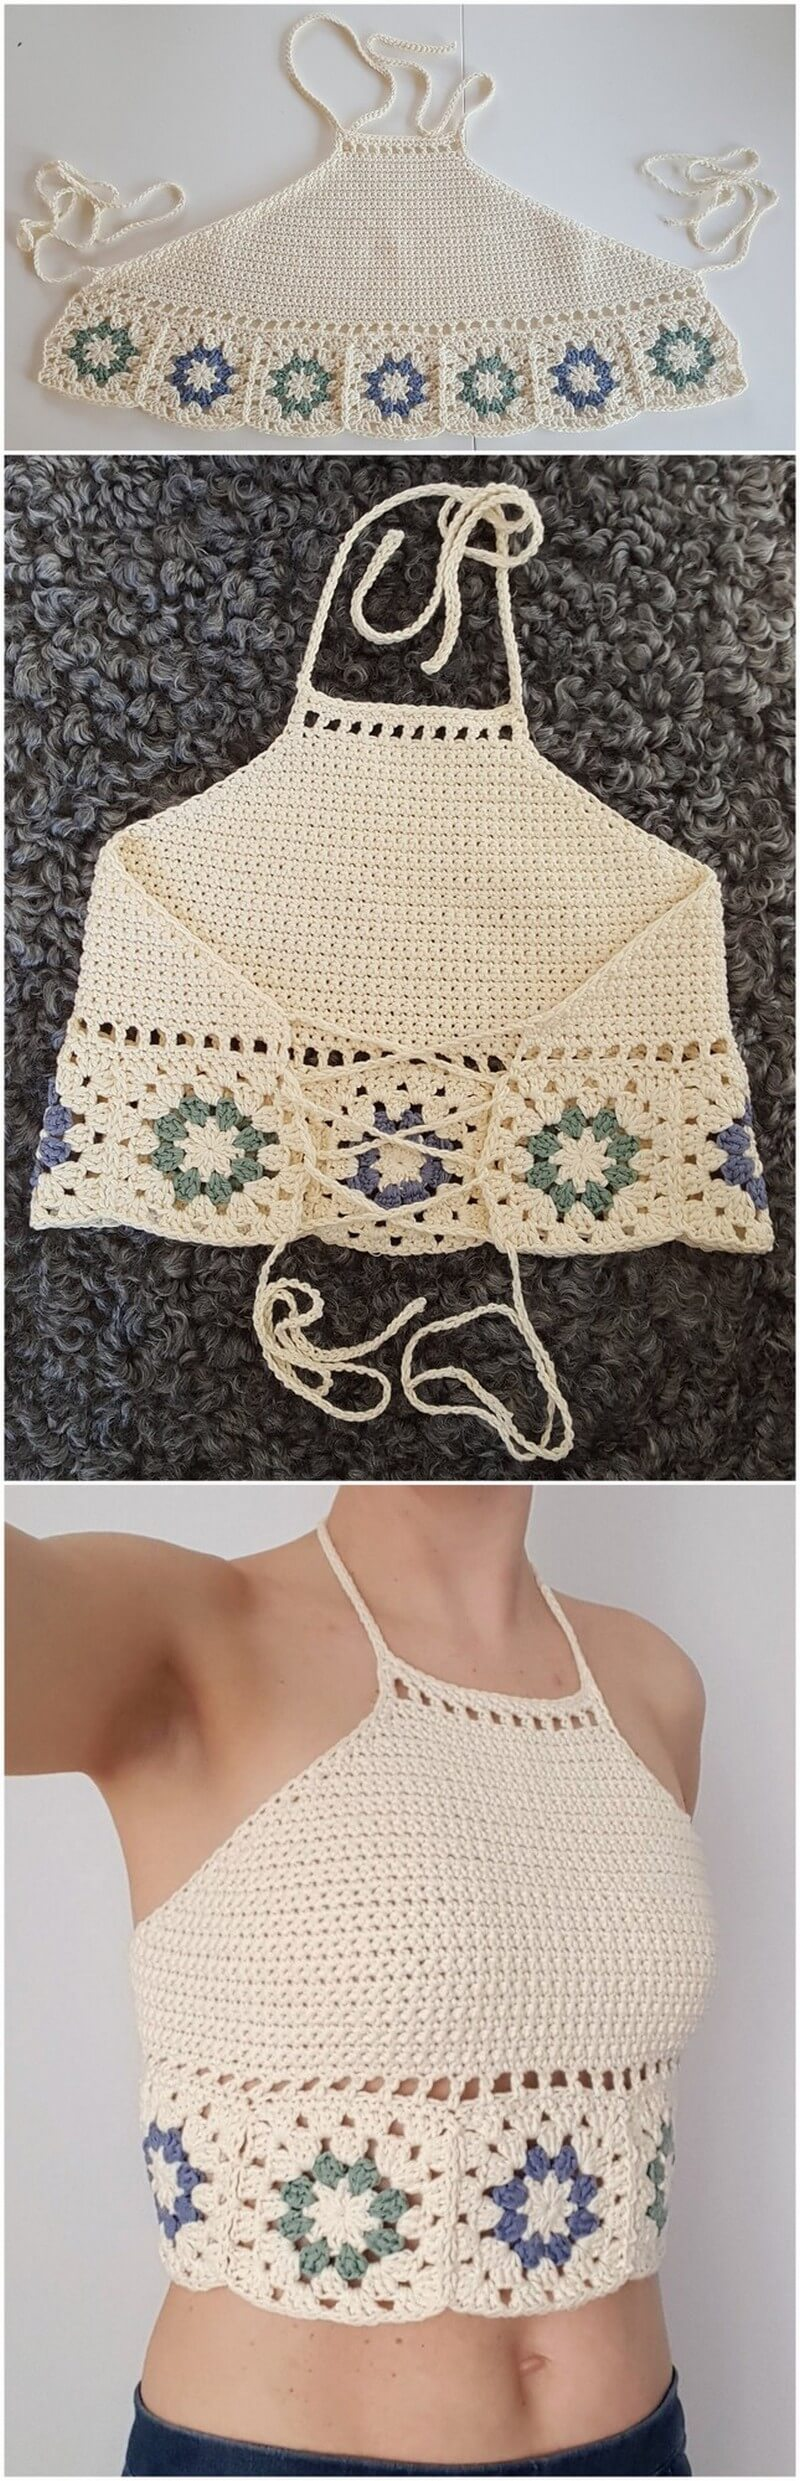 Crochet Top Pattern (7)